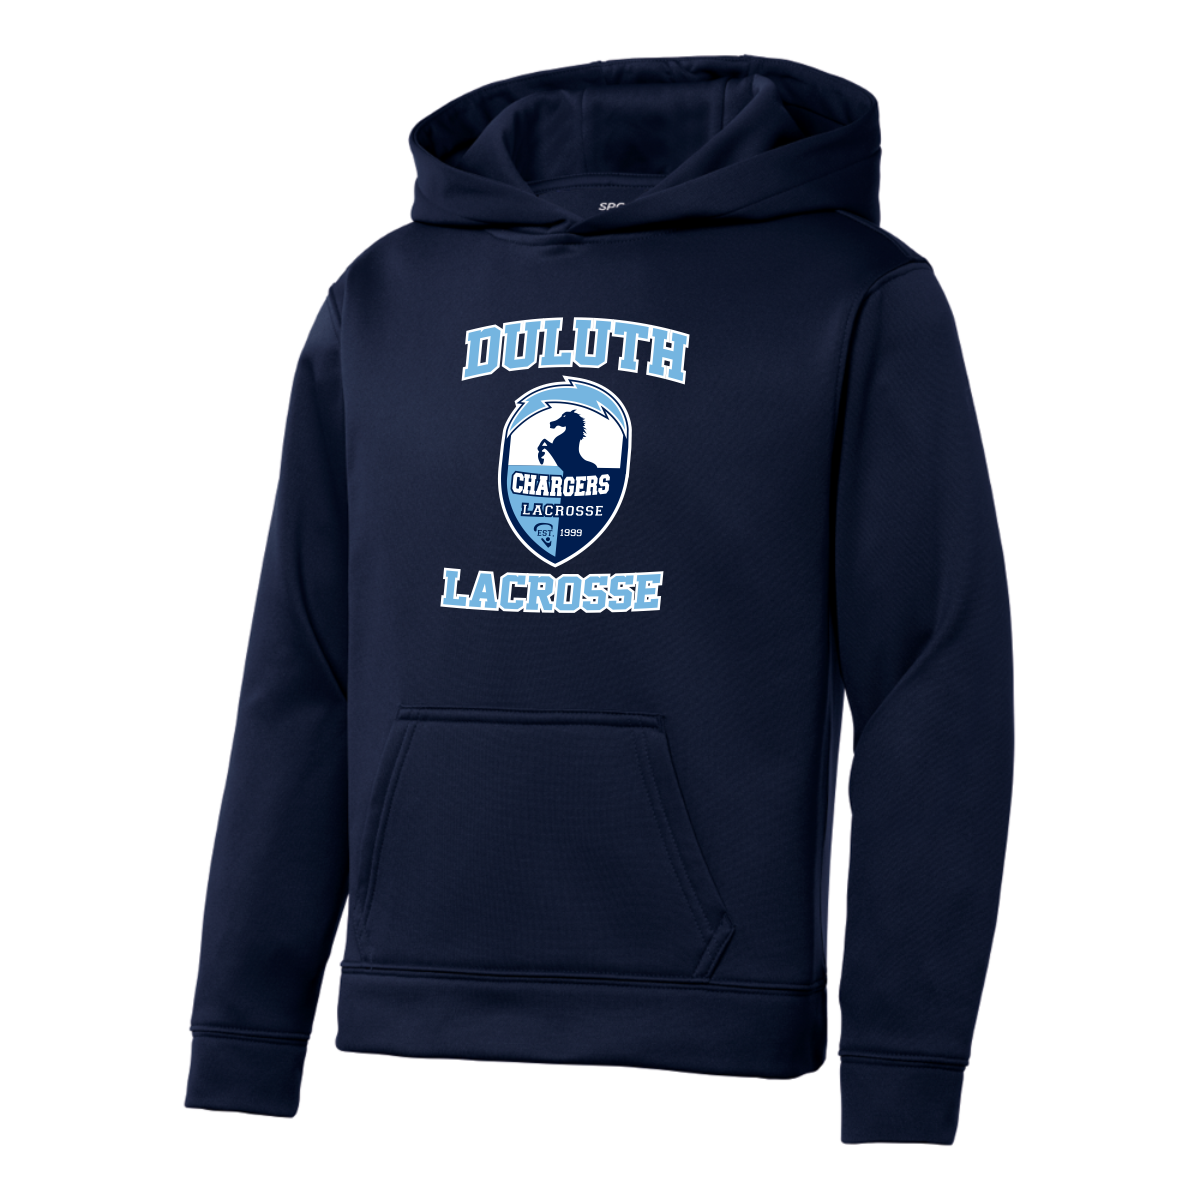 YOUTH YST244 Sport-Tek® Youth Sport-Wick® Fleece Hooded Pullover with heat transfer logo